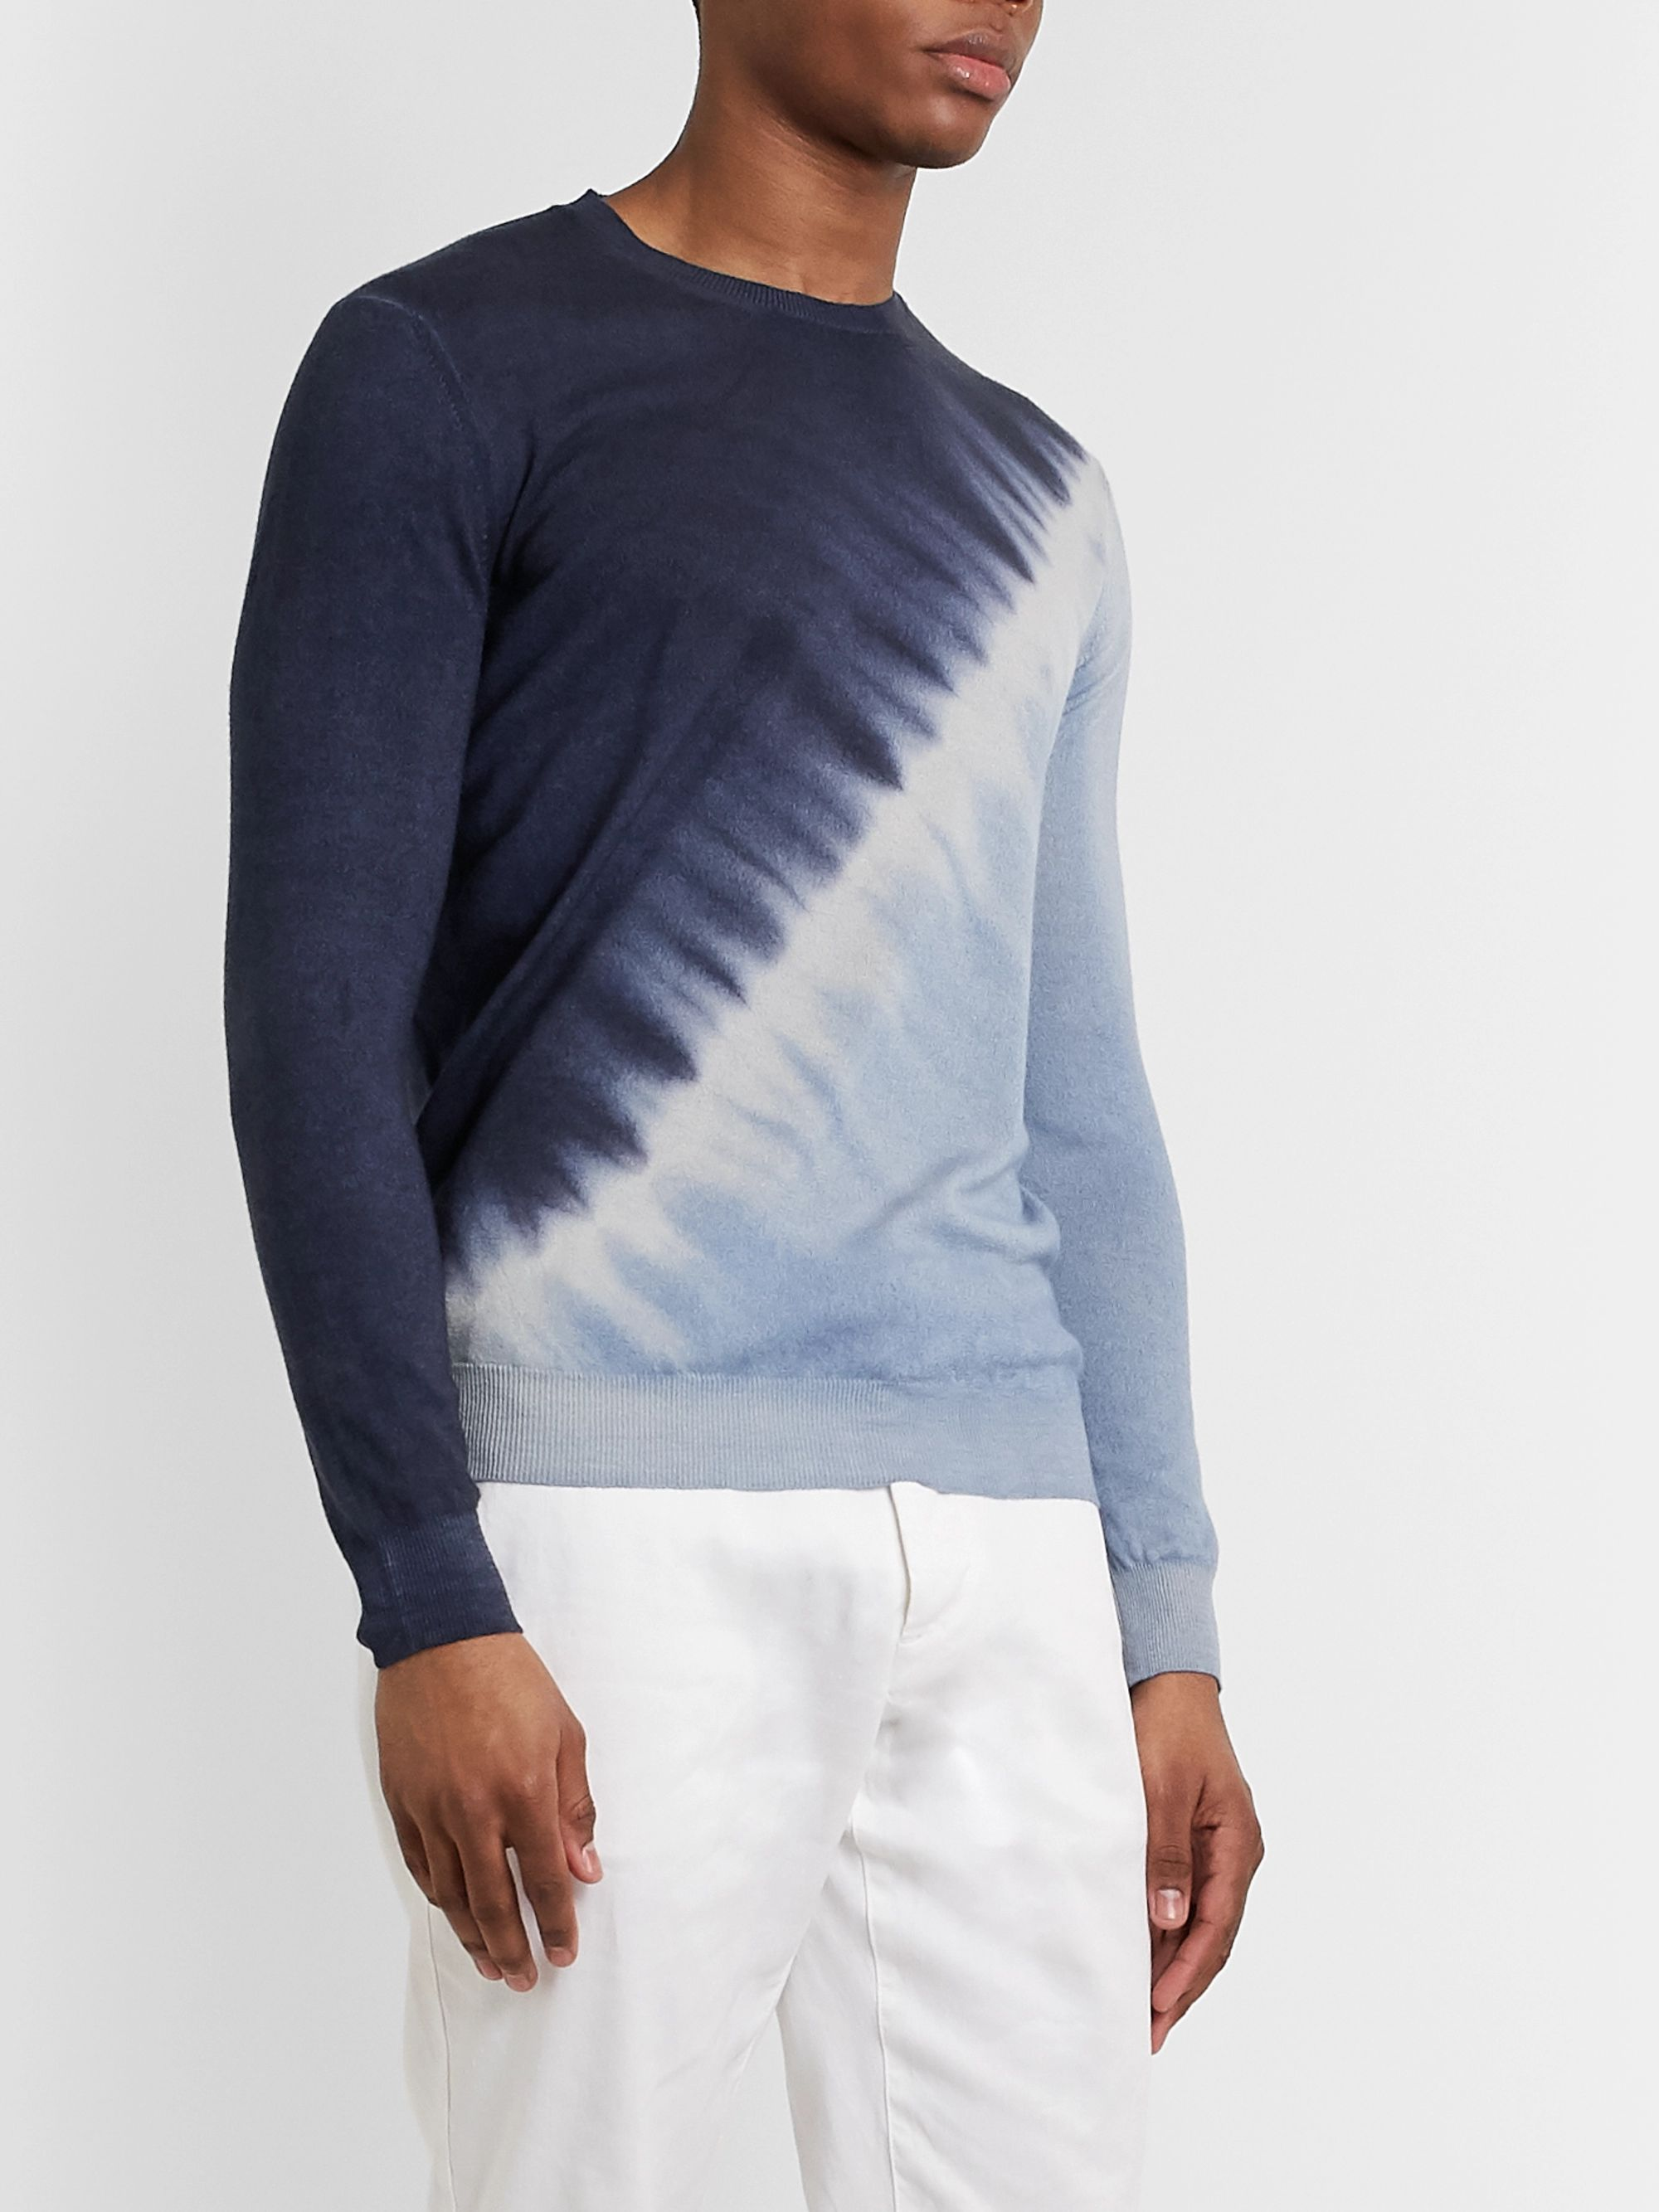 Altea Tie-Dyed Cashmere Sweater